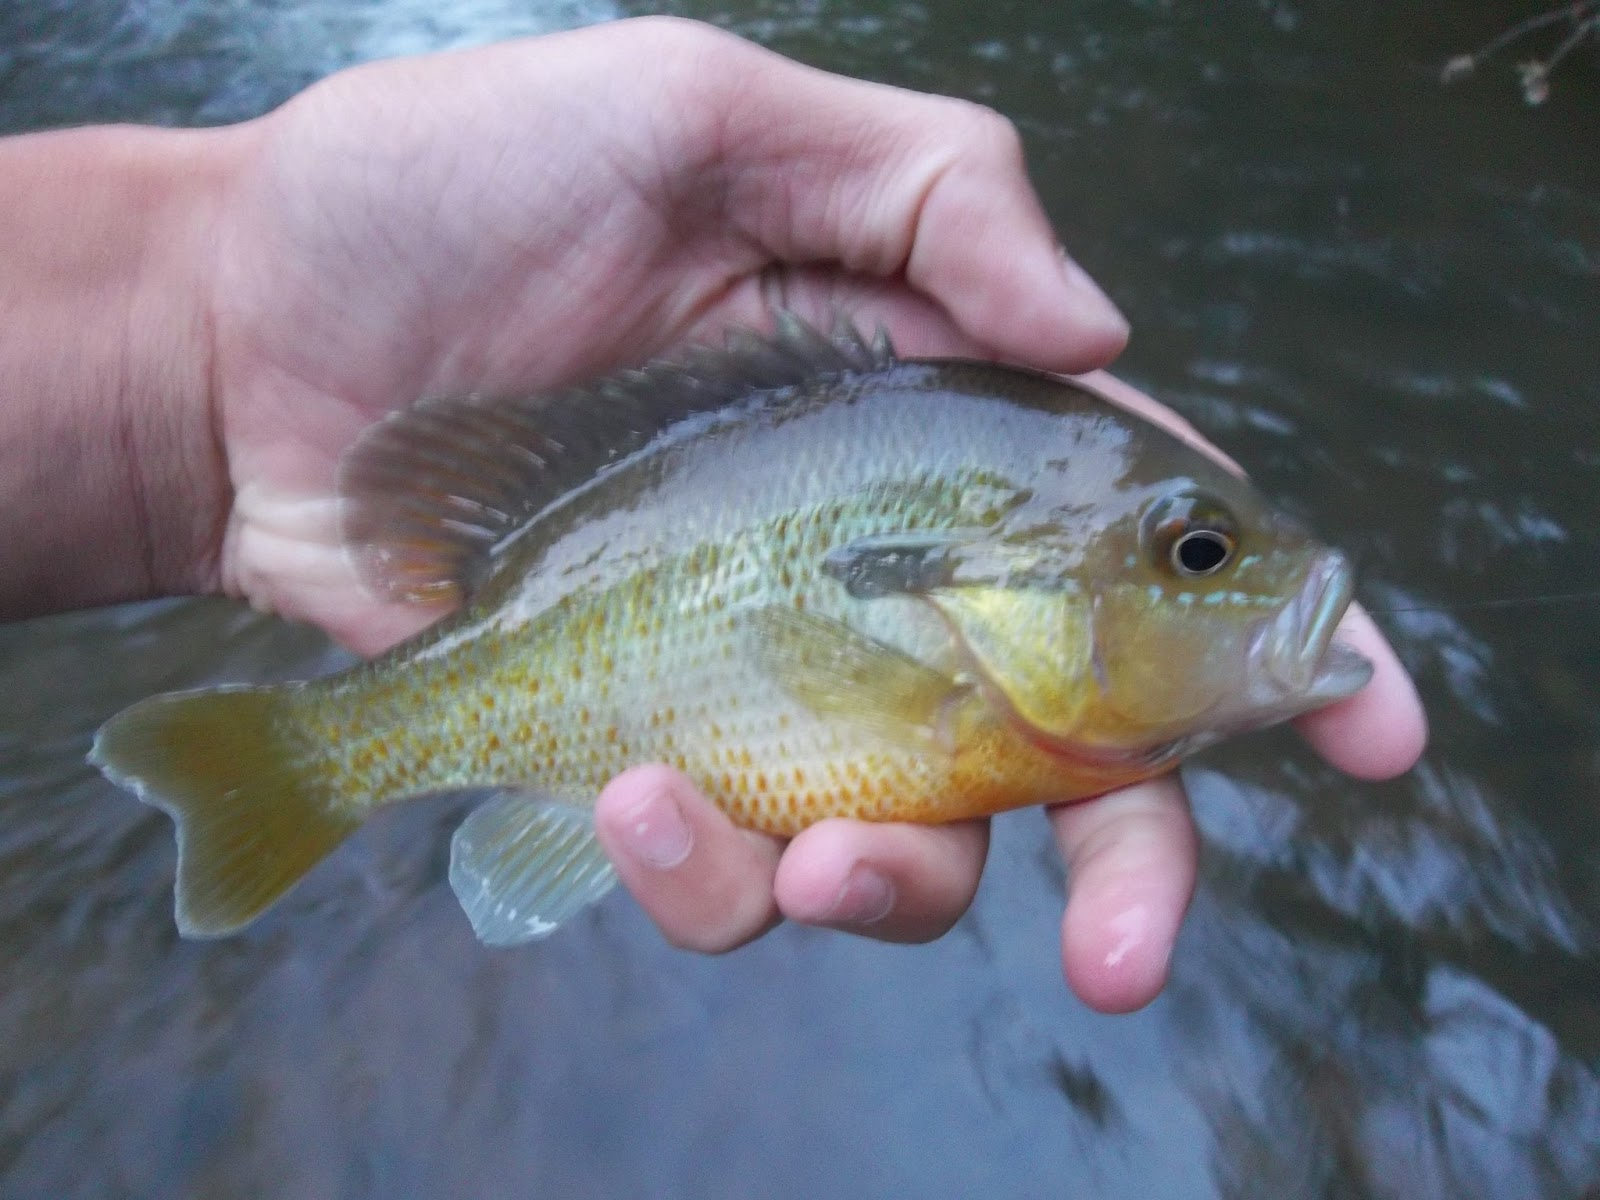 ... sunfish redear sunfish green sunfish spotted sunfish redbreast sunfish